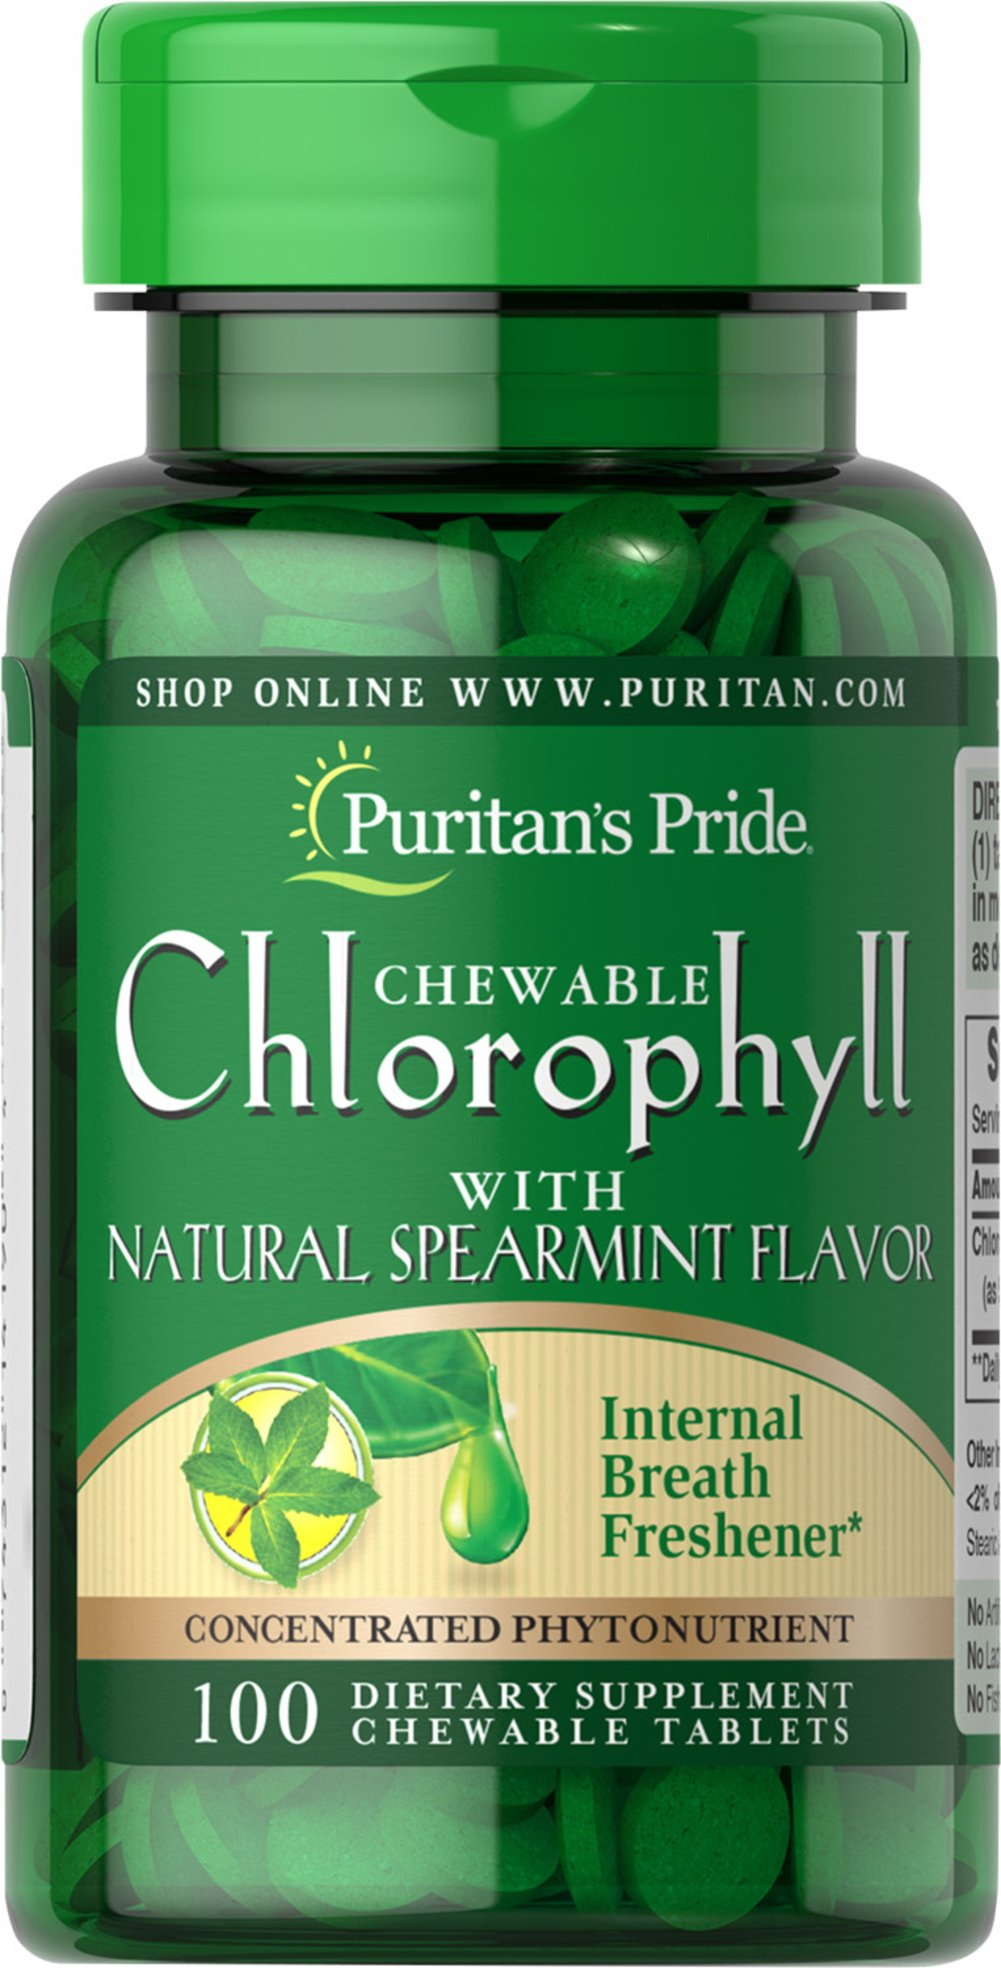 Chewable Chlorophyll & Mint 3 mg <p>These tablets contain natural chlorophyll and mint, two effective breath fresheners.  Use them as needed to prevent or stop odors caused by indigestion, dentures, smoking, alcohol, onions, garlic and other foods.</p> 100 Chewables 3 mg $3.49